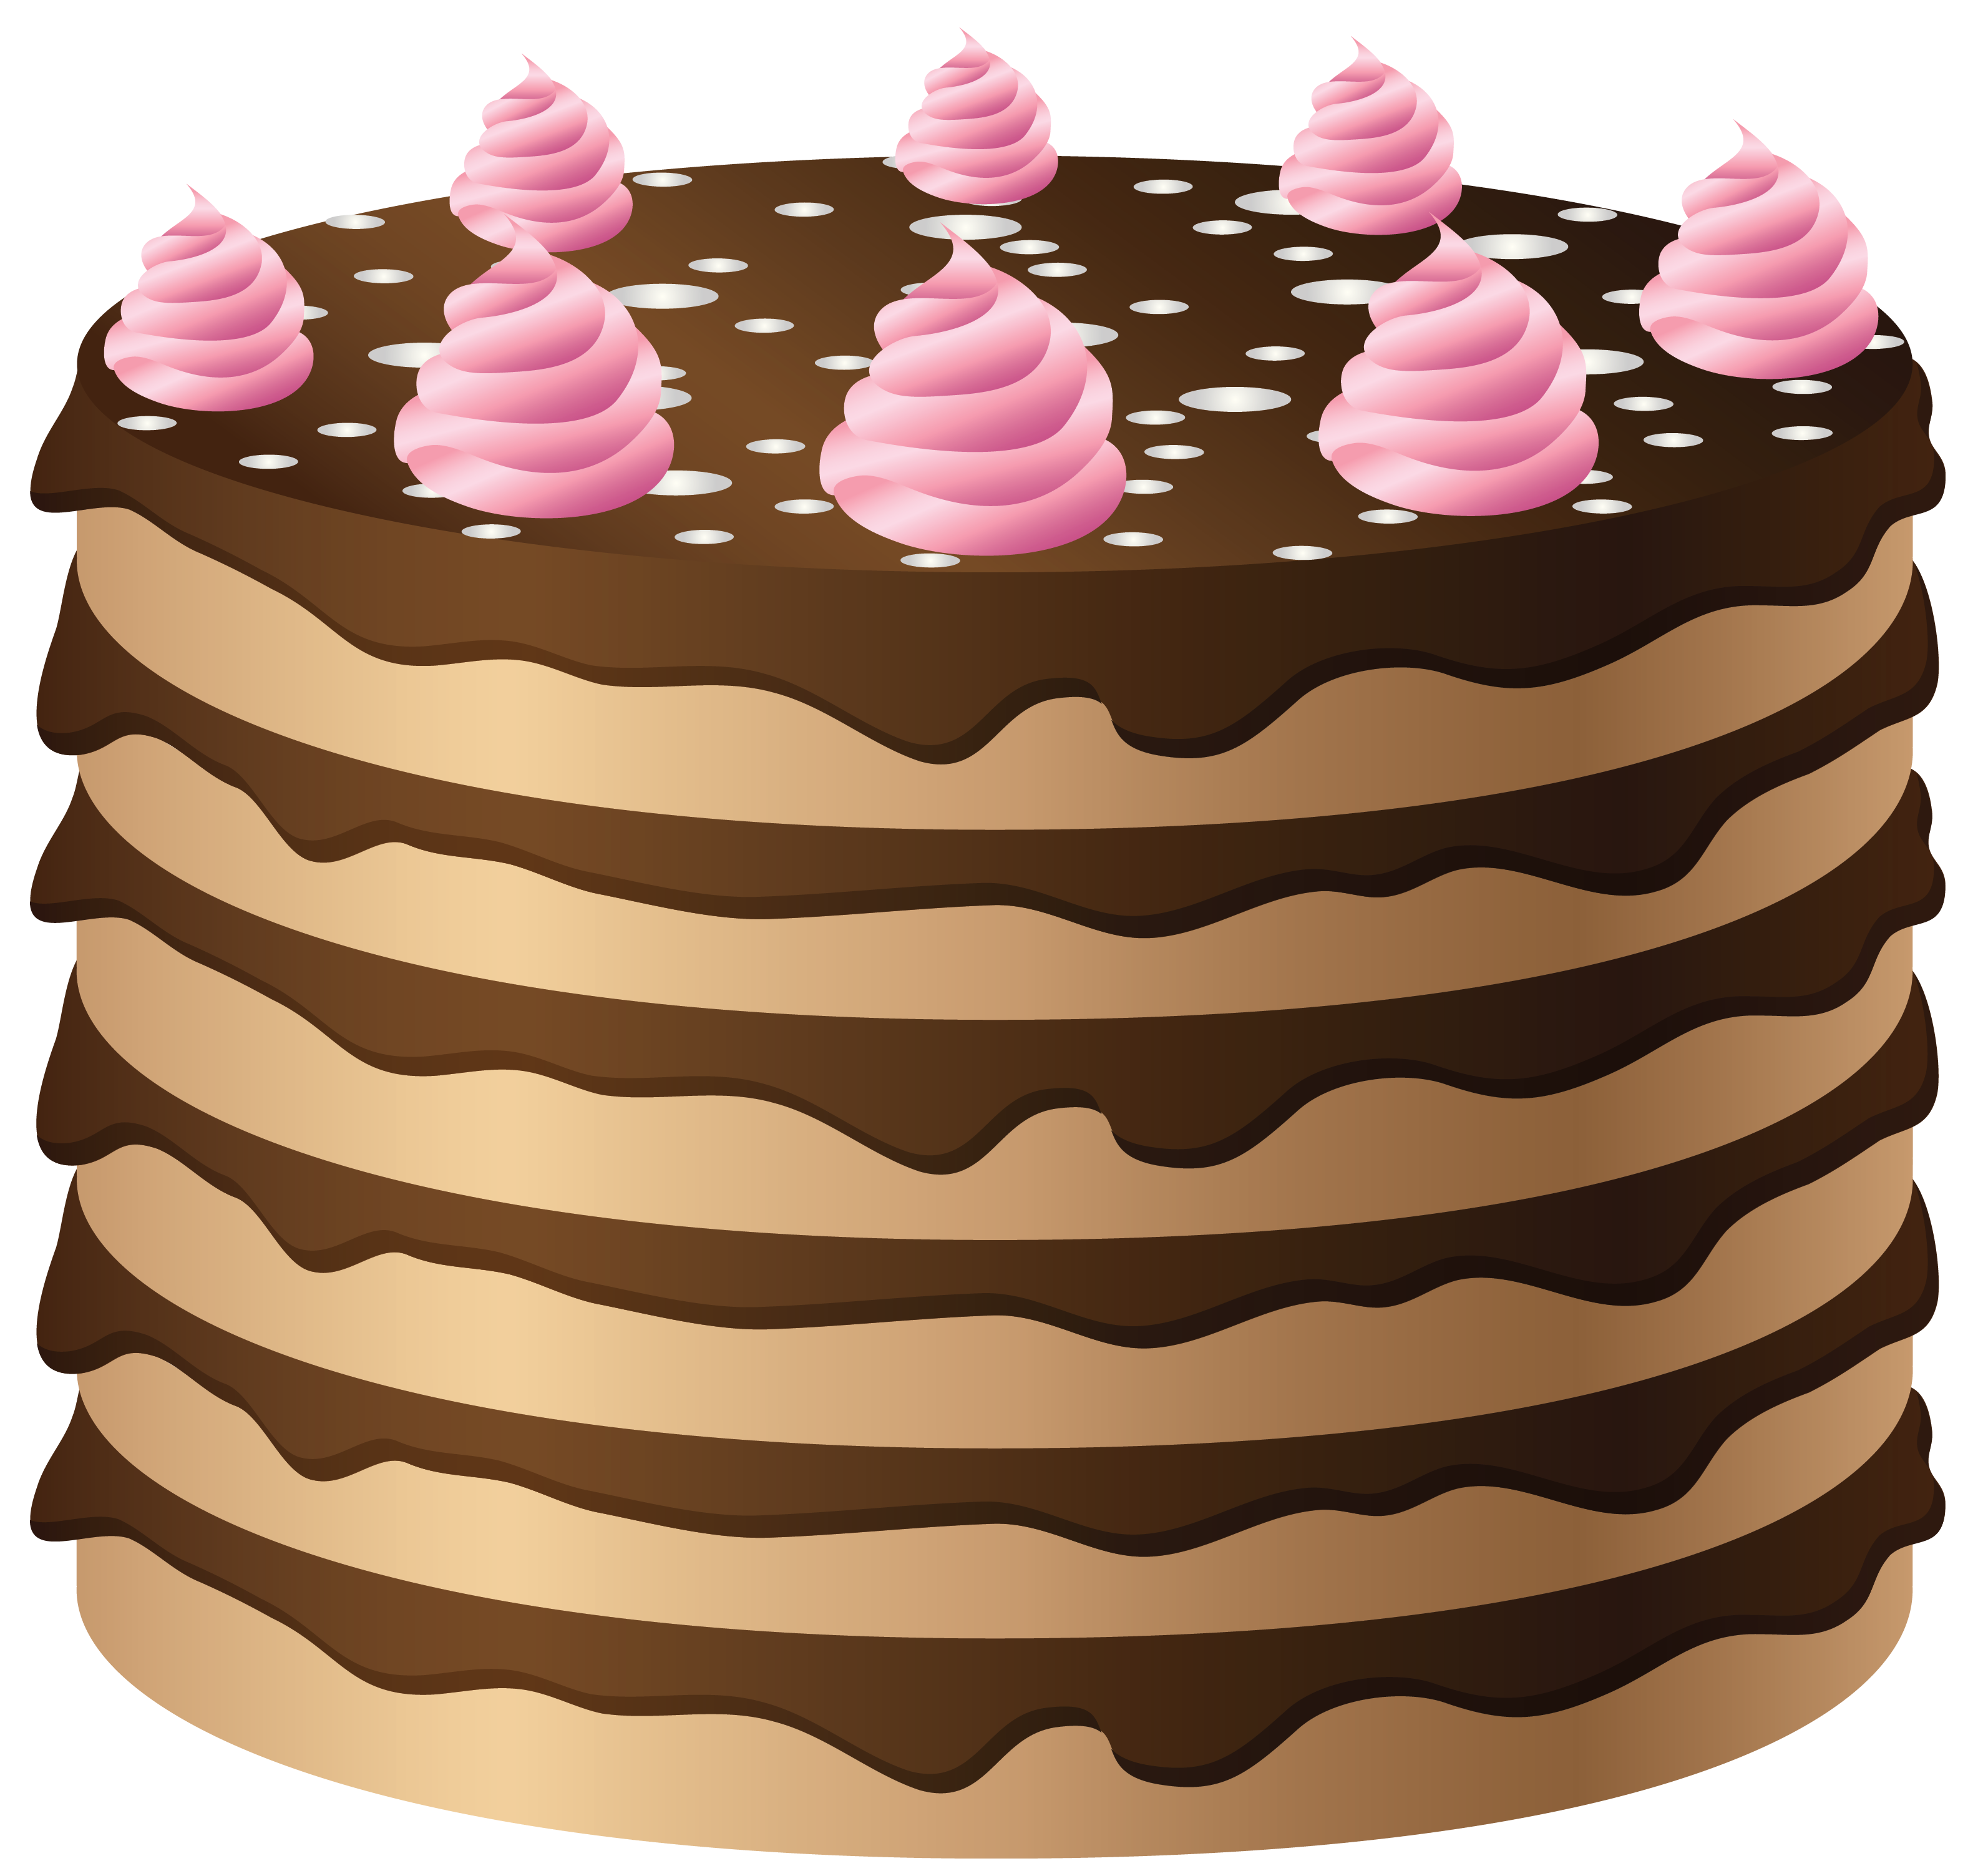 Chocolate cake clipart clip art transparent library Chocolate Cake with Pink Cream PNG Clipart | Gallery Yopriceville ... clip art transparent library